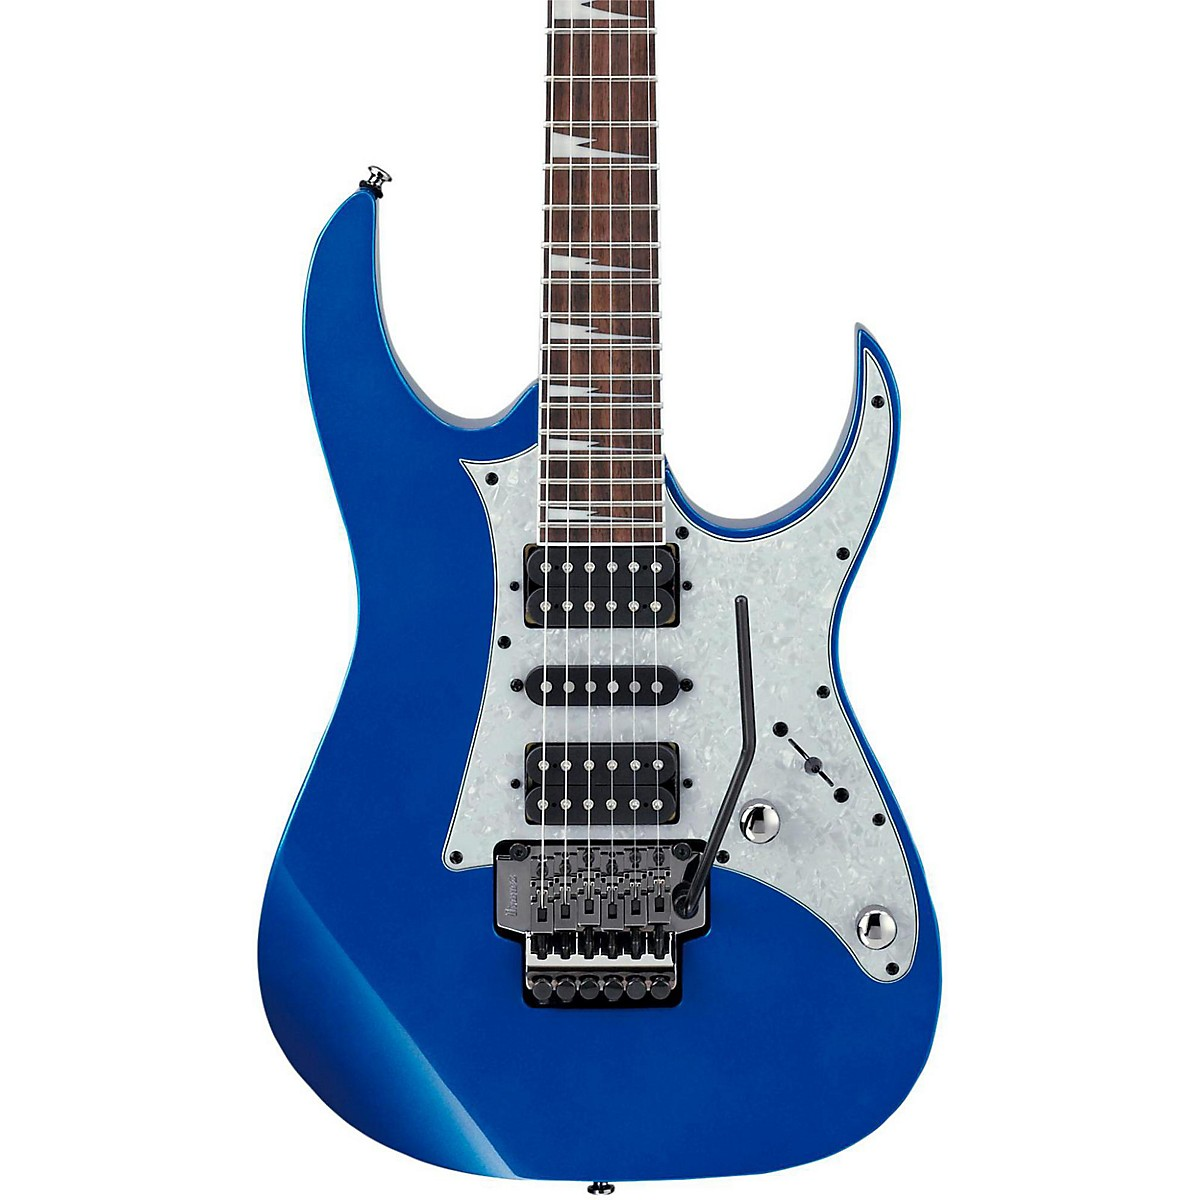 Ibanez RG450DX RG Series Electric Guitar